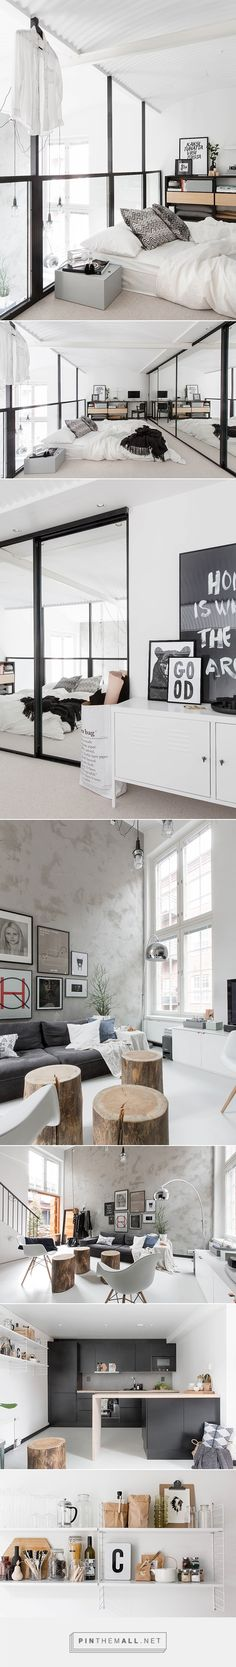 Cool+scandinavian+loft+|+My+Paradissi+-+created+via+https://pinthemall.net